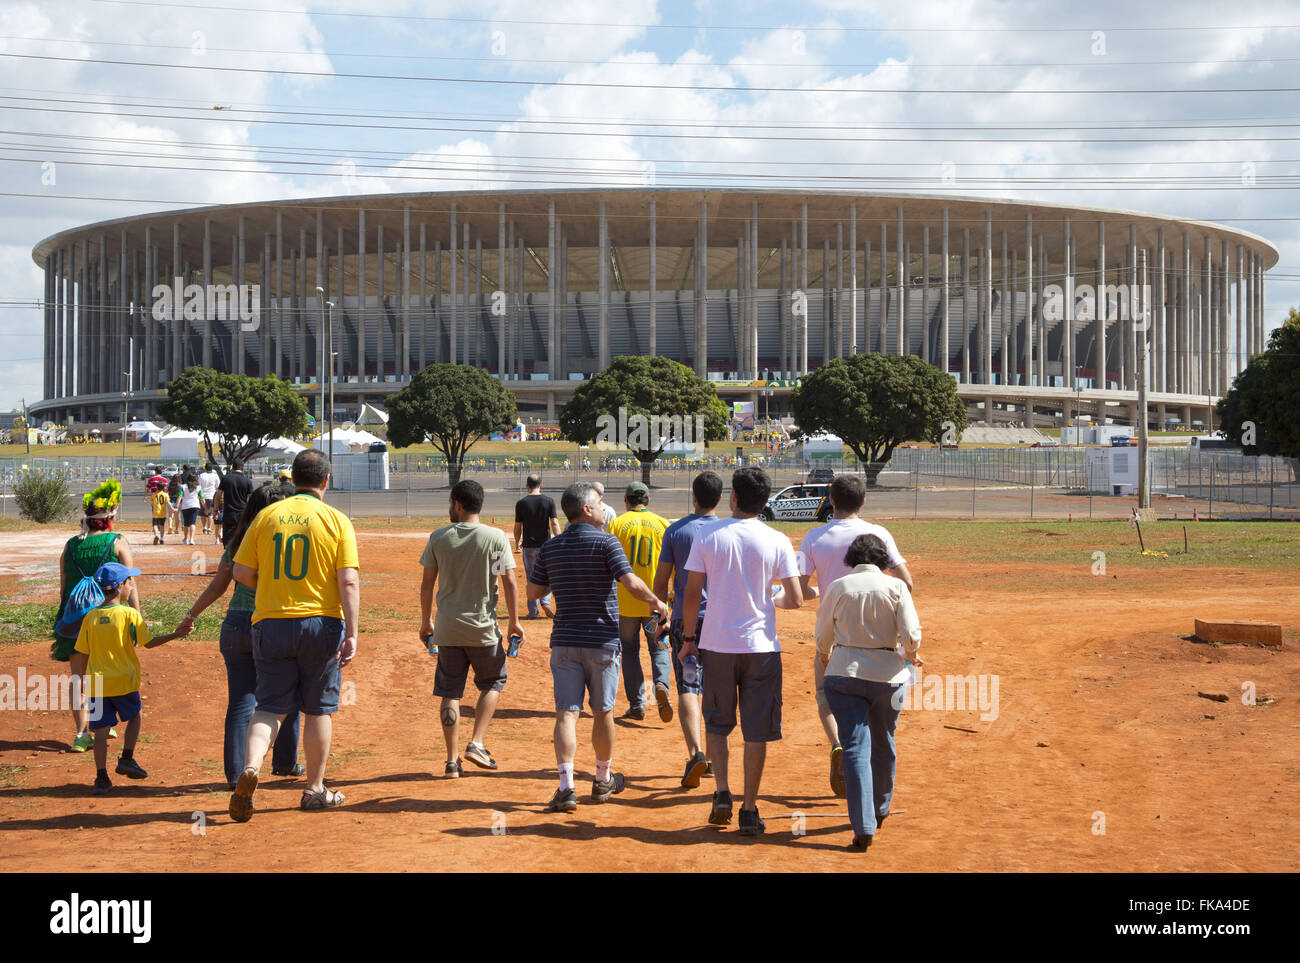 Fans arriving for the opening match of the Confederations Cup - Stock Image